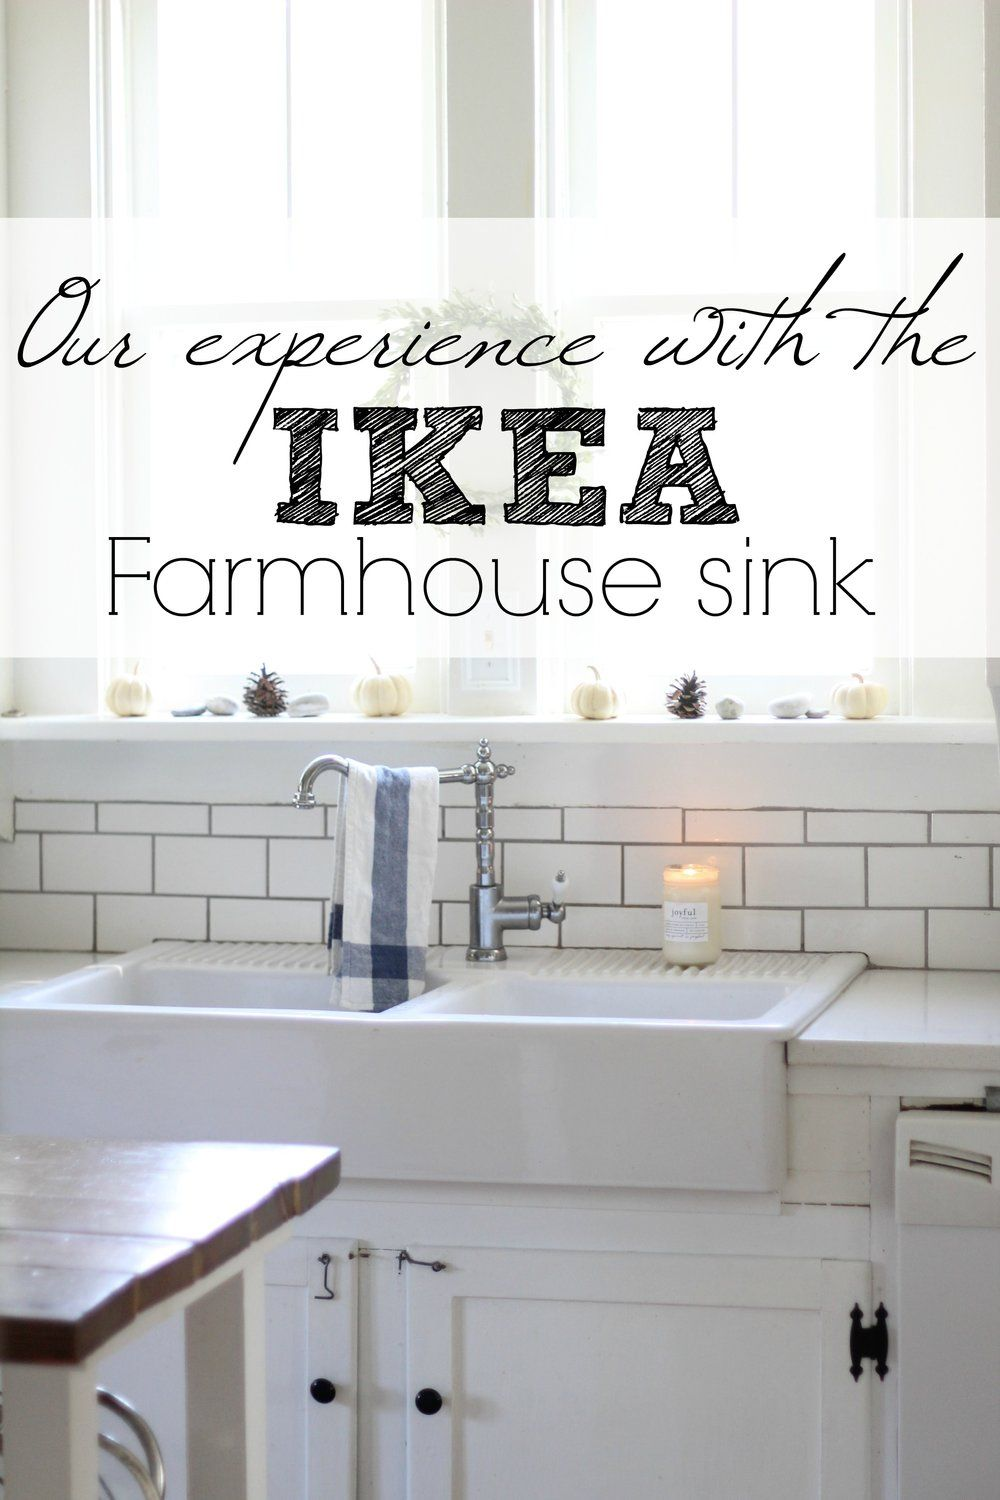 Our Experience with the IKEA Domsjo Double Bowl Farmhouse Sink - Farmhouse on Boone